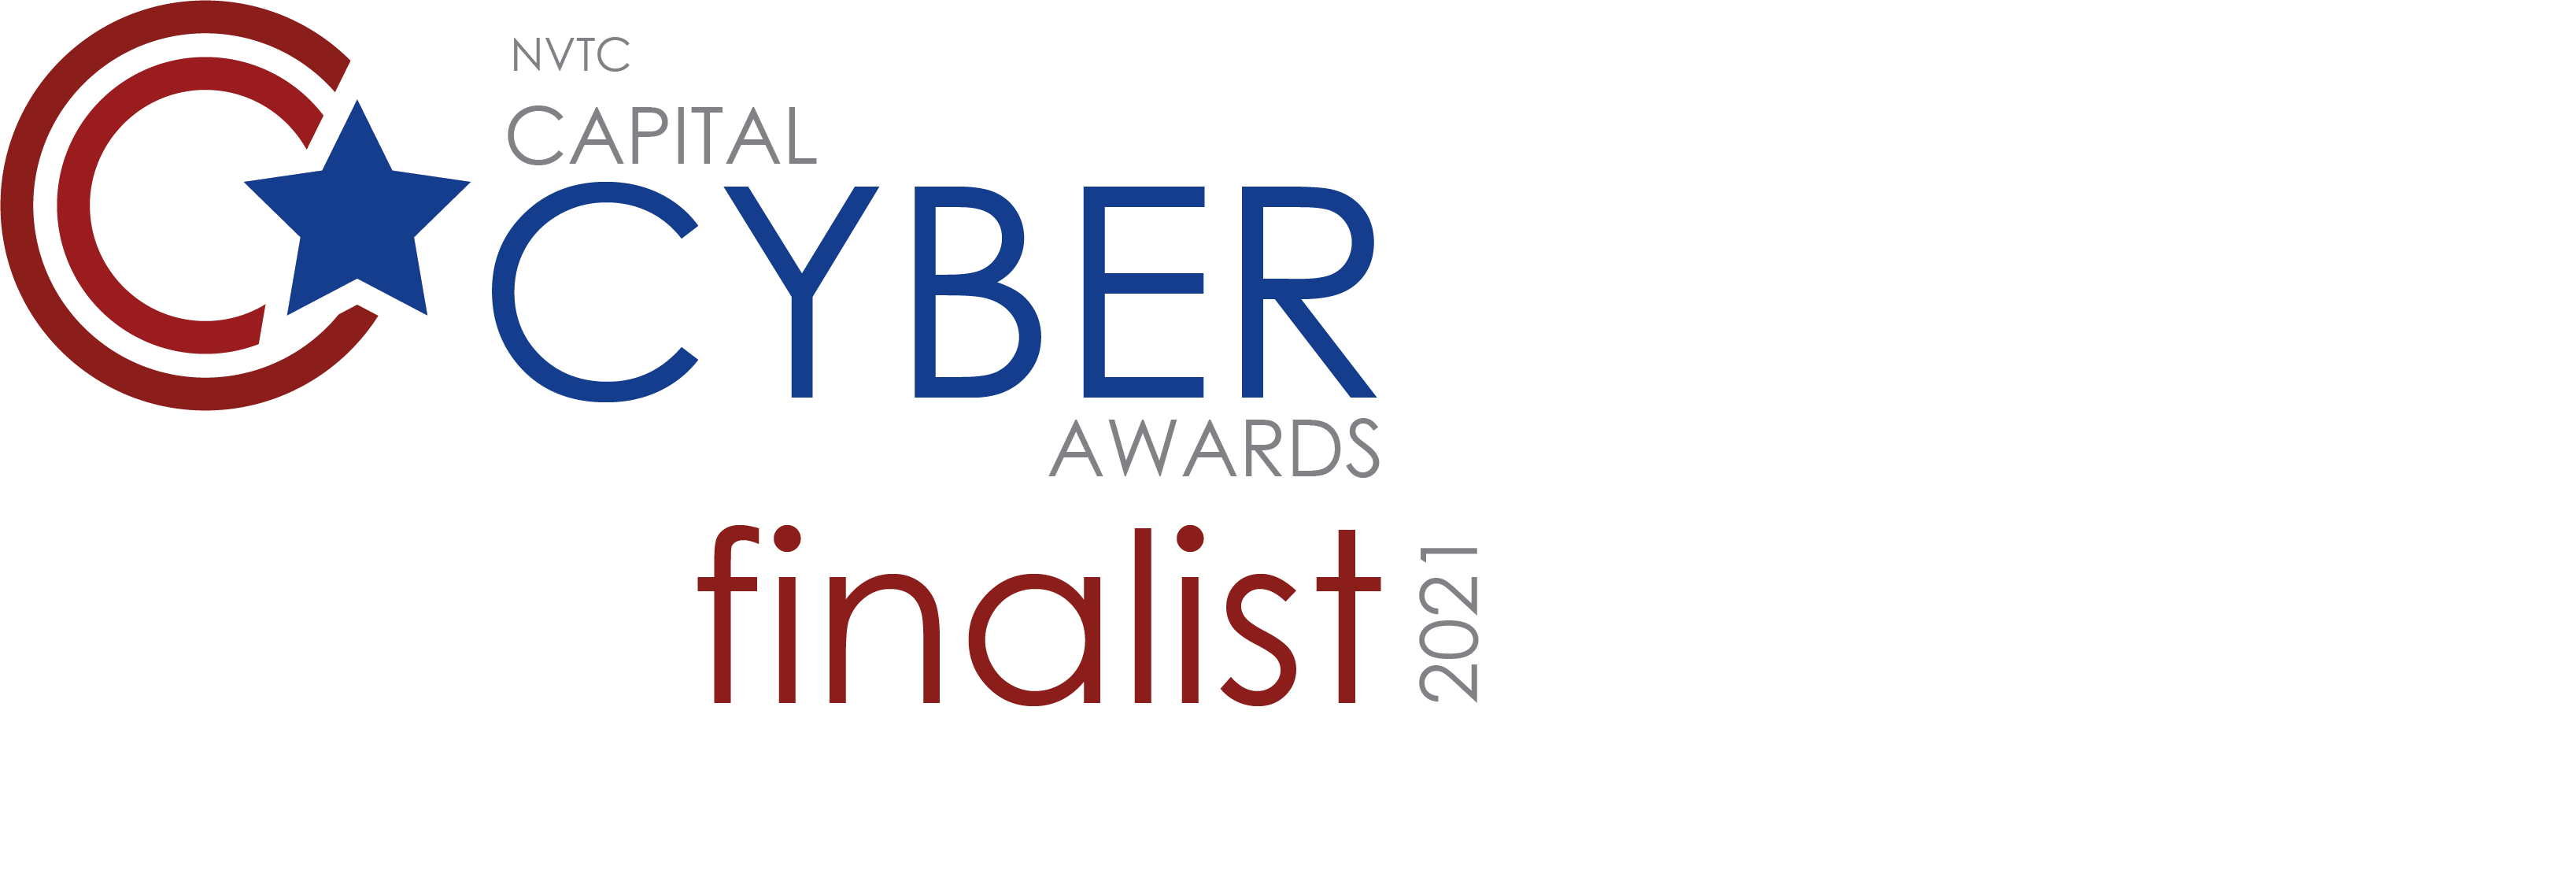 Cynalytica selected as finalist in NVTC Capital Cyber Awards